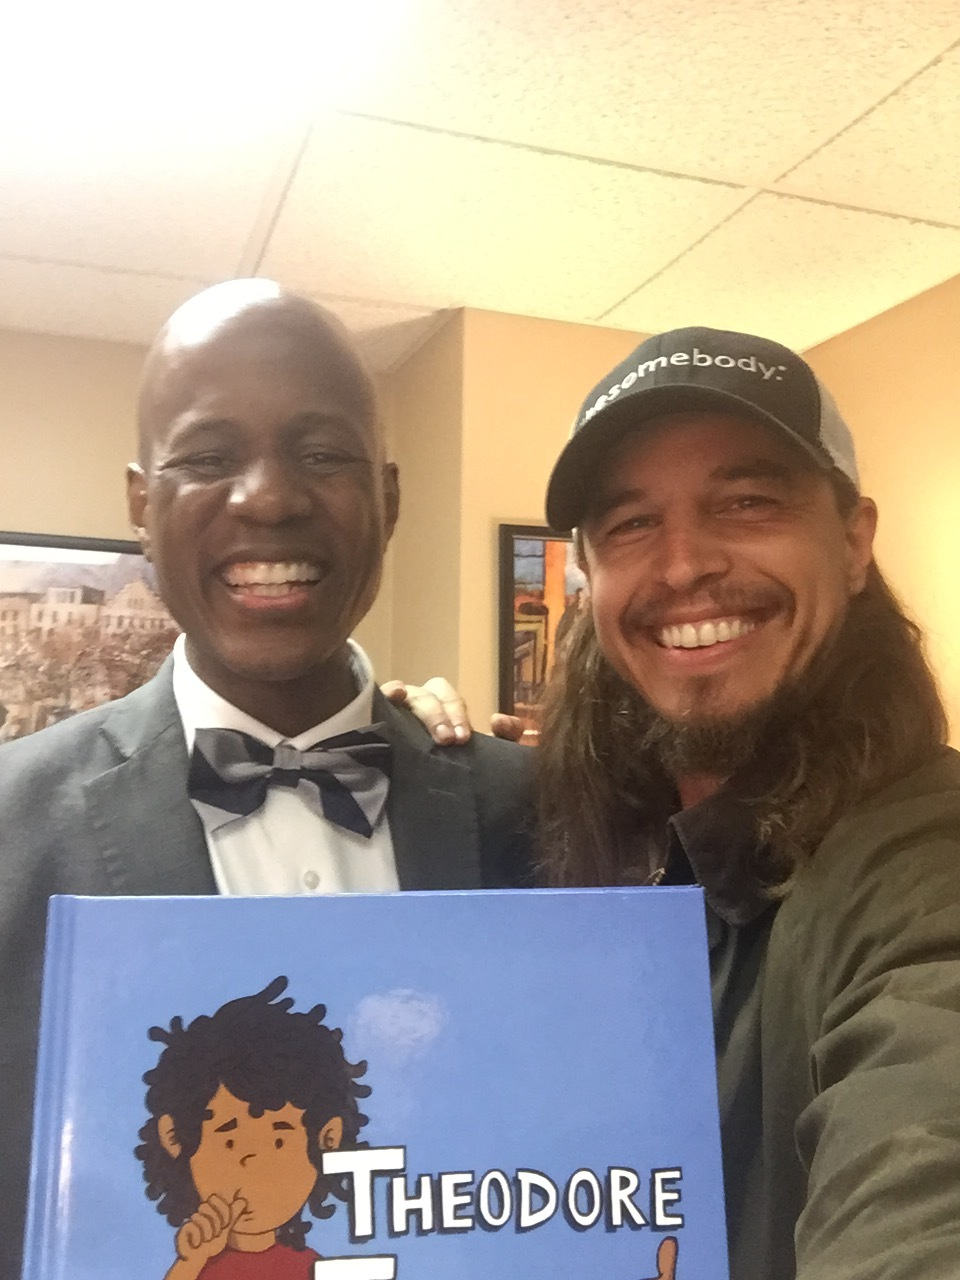 My old college English teacher, the famous Stephen Moore. He recently published a children's book about bullying called Theodore Thumbs. You can check it out and/or buy it here:https://www.clearforkpublishing.com/our-store/theodore-thumbs/